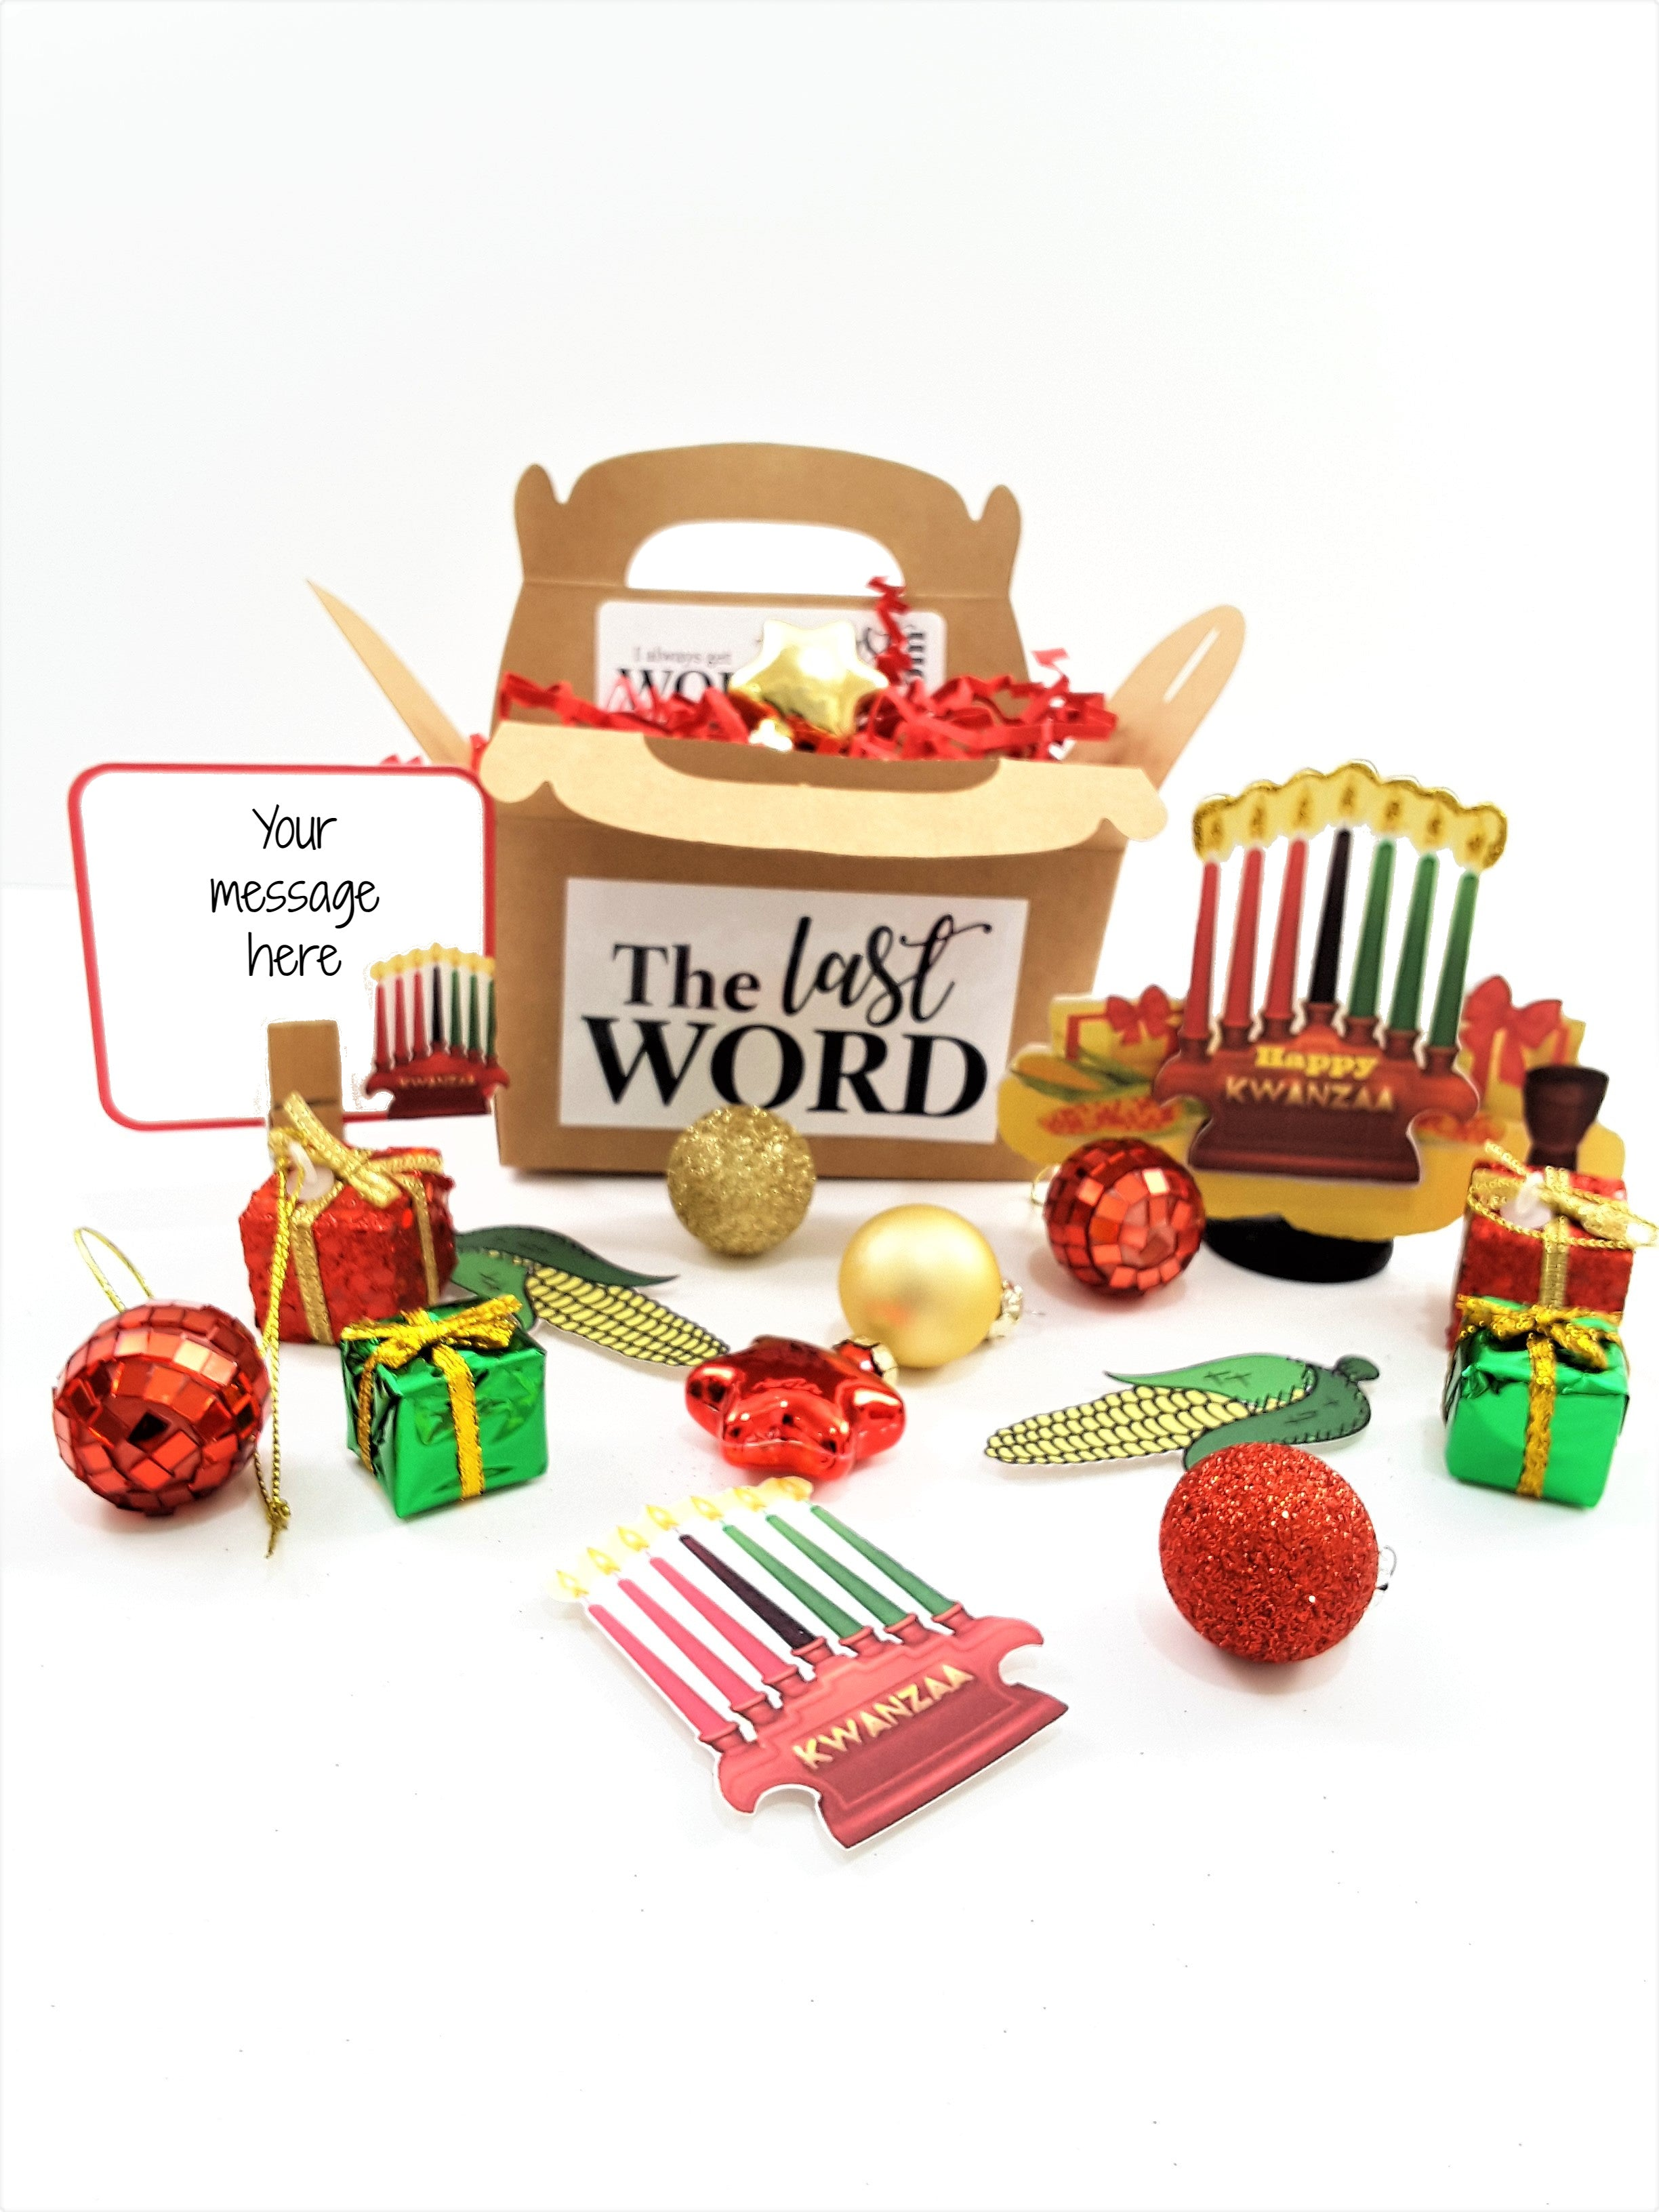 HAPPY KWANZAA 3D GREETING CARD GIFT - includes goodies! - TheLastWordBish.com